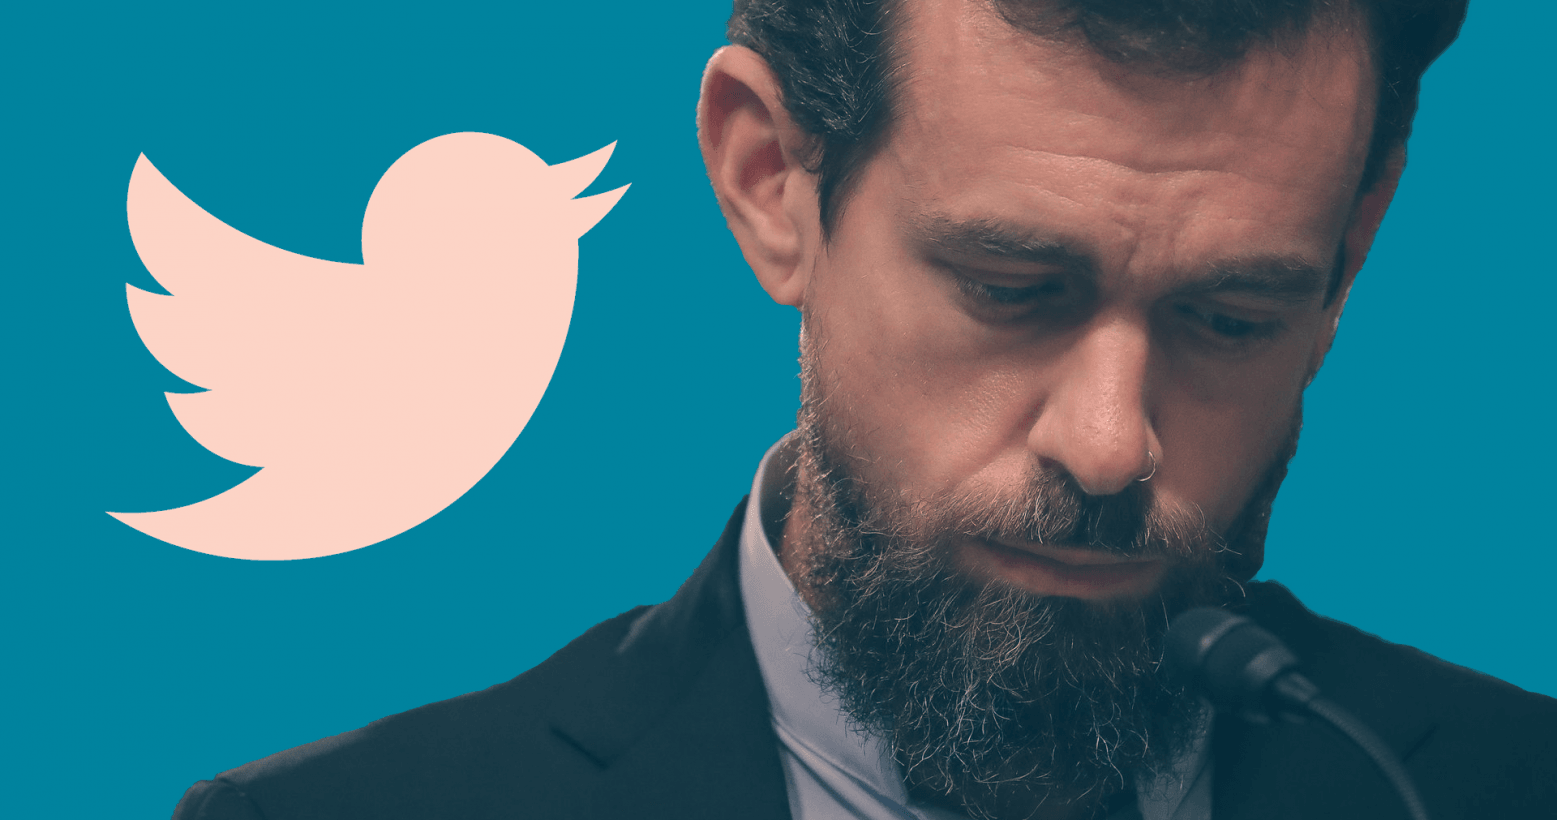 Twitter suspends tweeting via SMS after CEO Dorsey's account gets hi-jack-ed